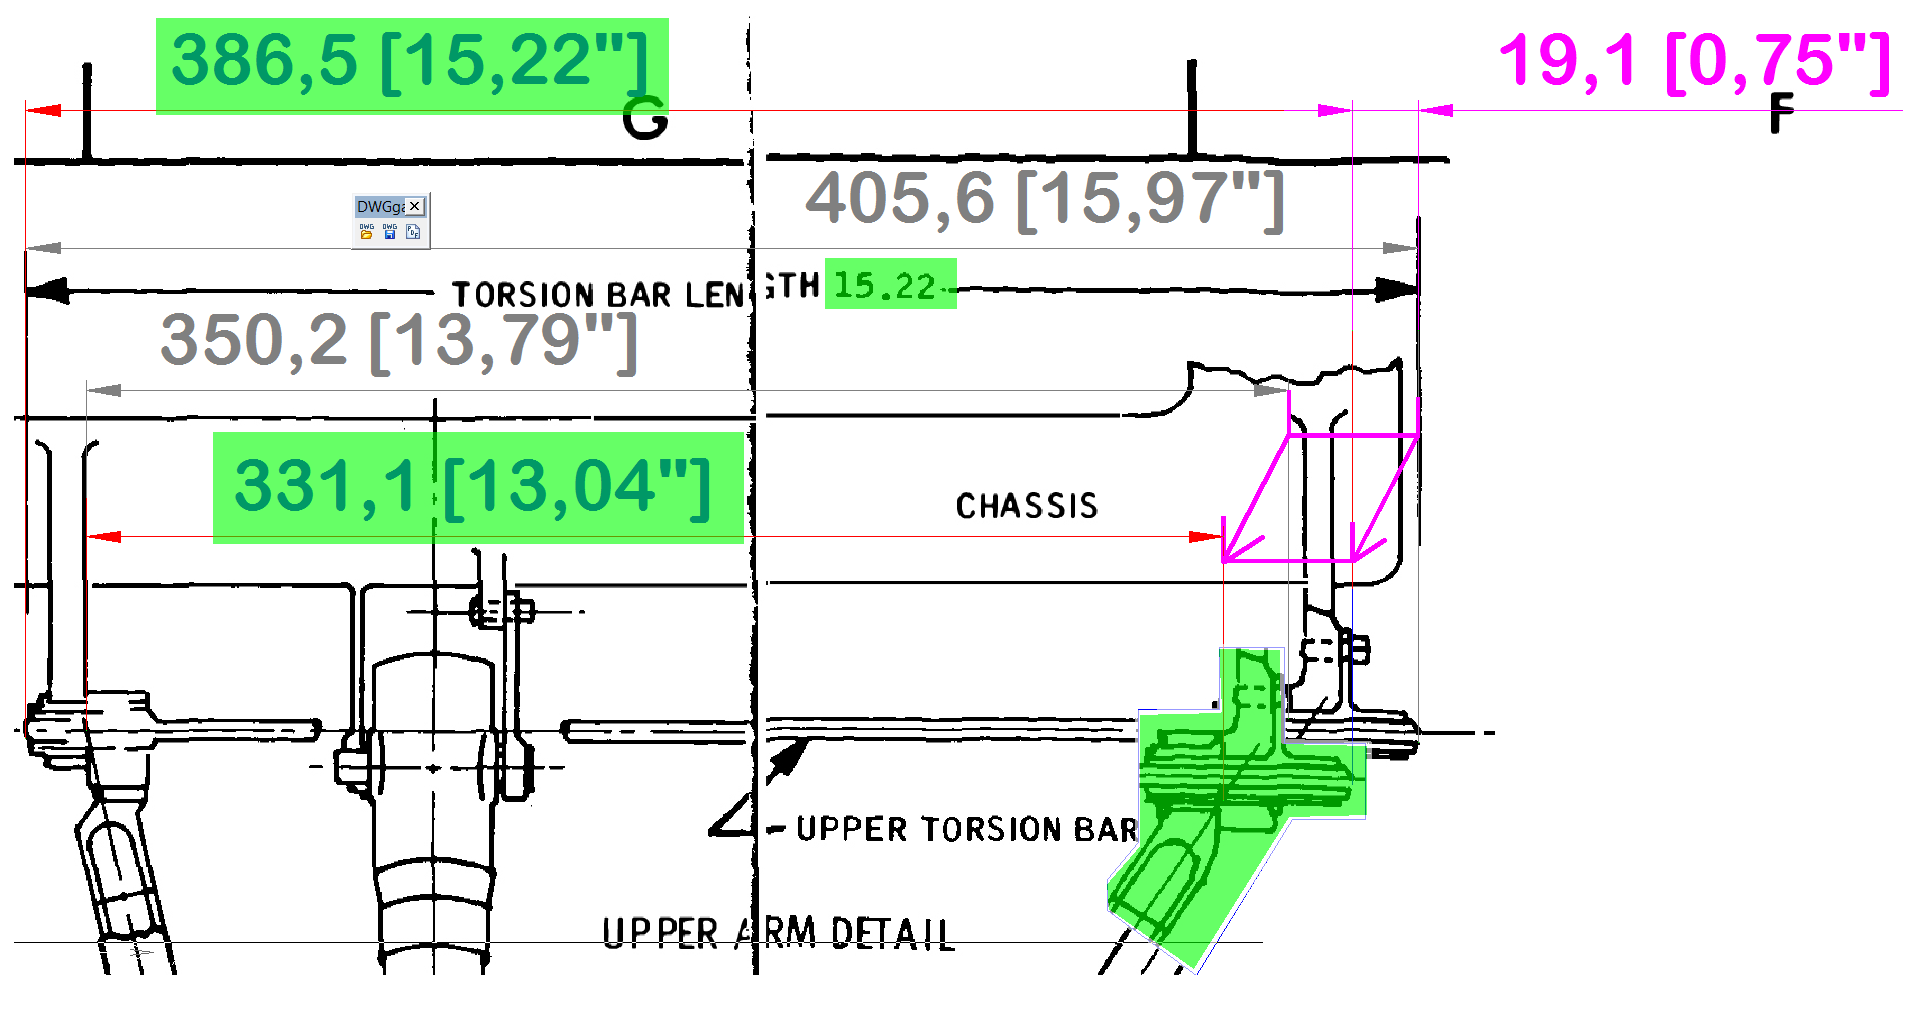 upper torsion bar length-corrected.png